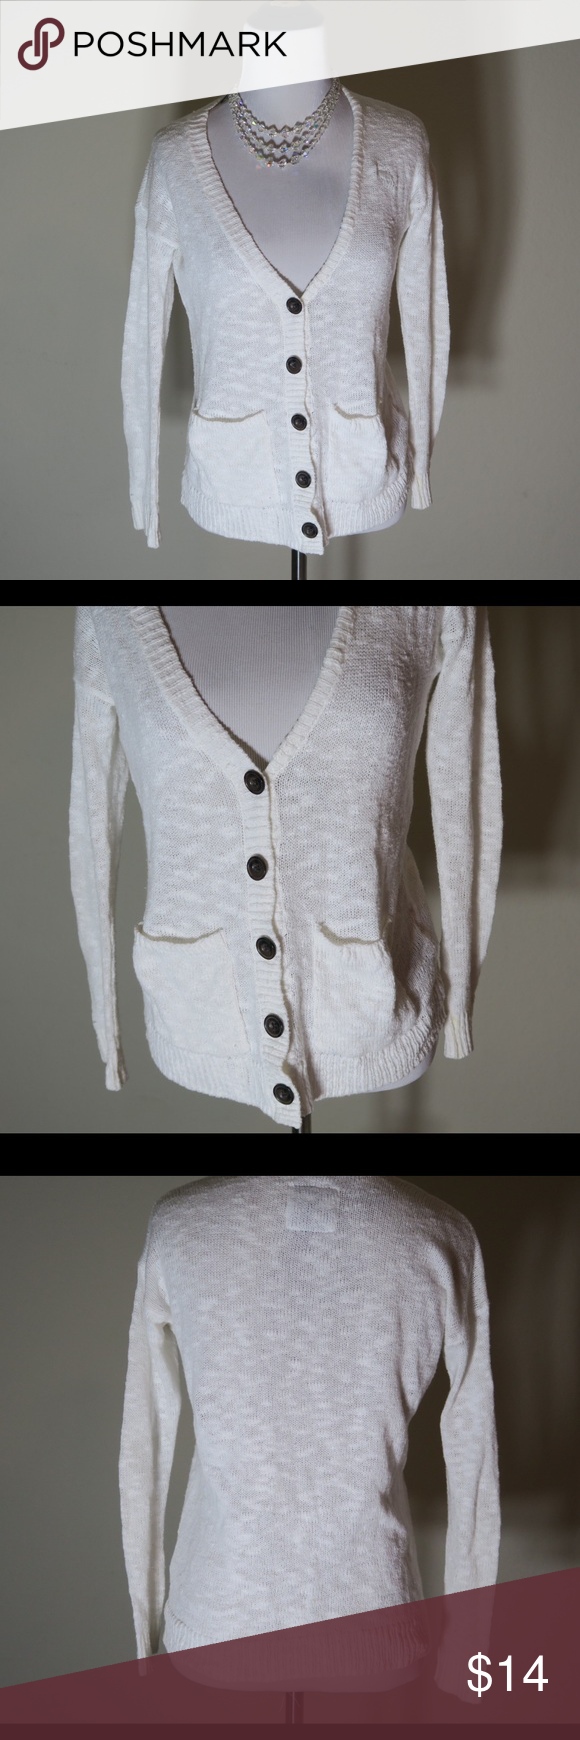 Abercrombie Sweater / Cream Cardigan Cream knit sweater. Super soft material. Abercrombie & Fitch Sweaters Cardigans